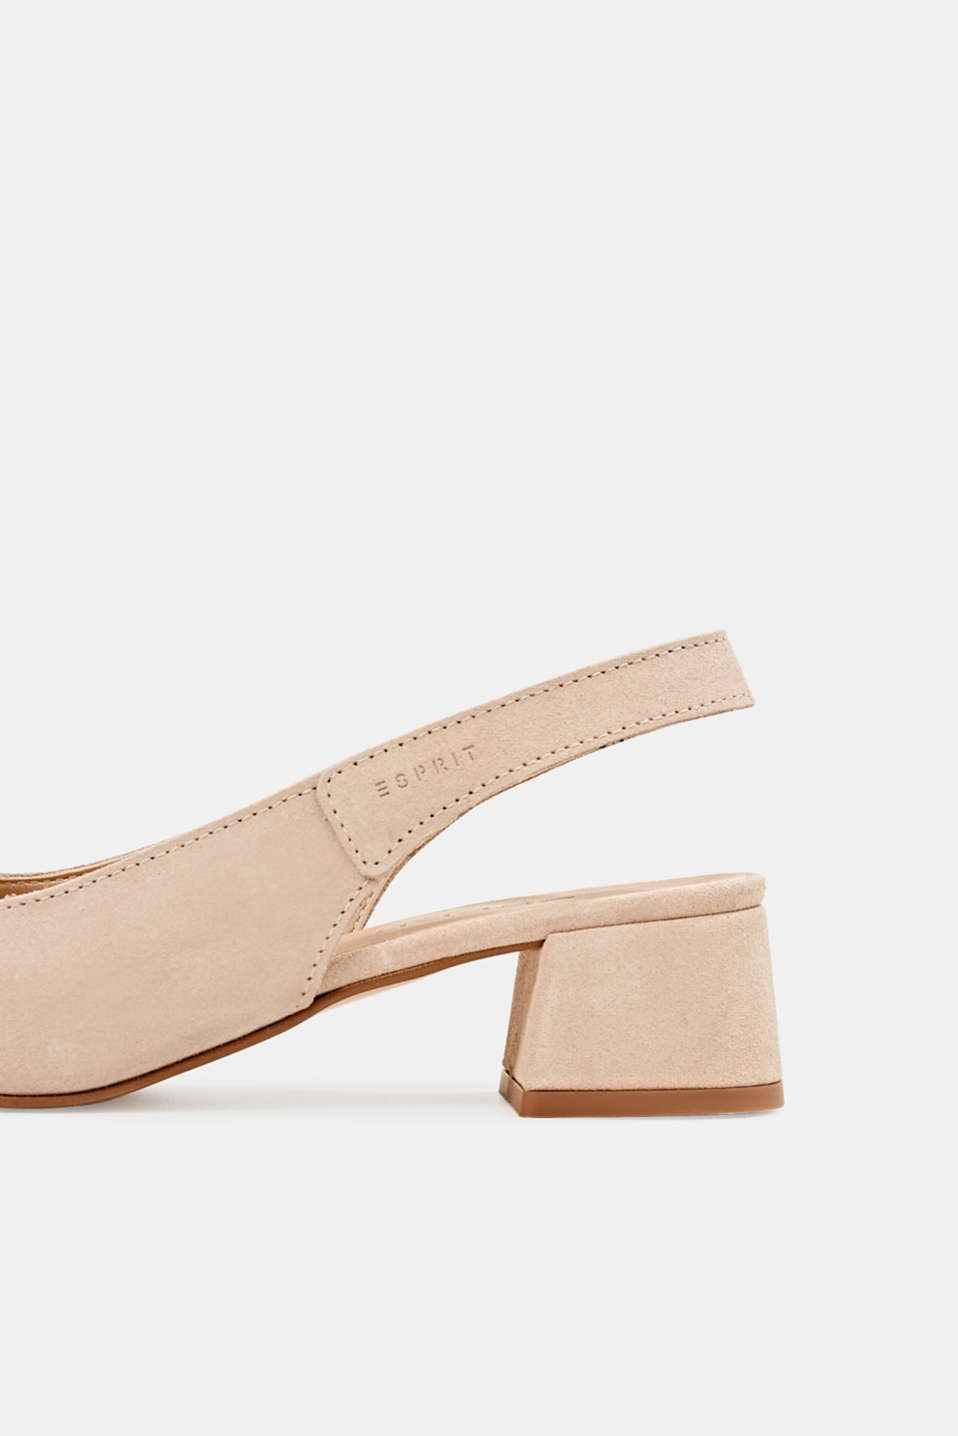 Leather sling back court shoes, NUDE, detail image number 6